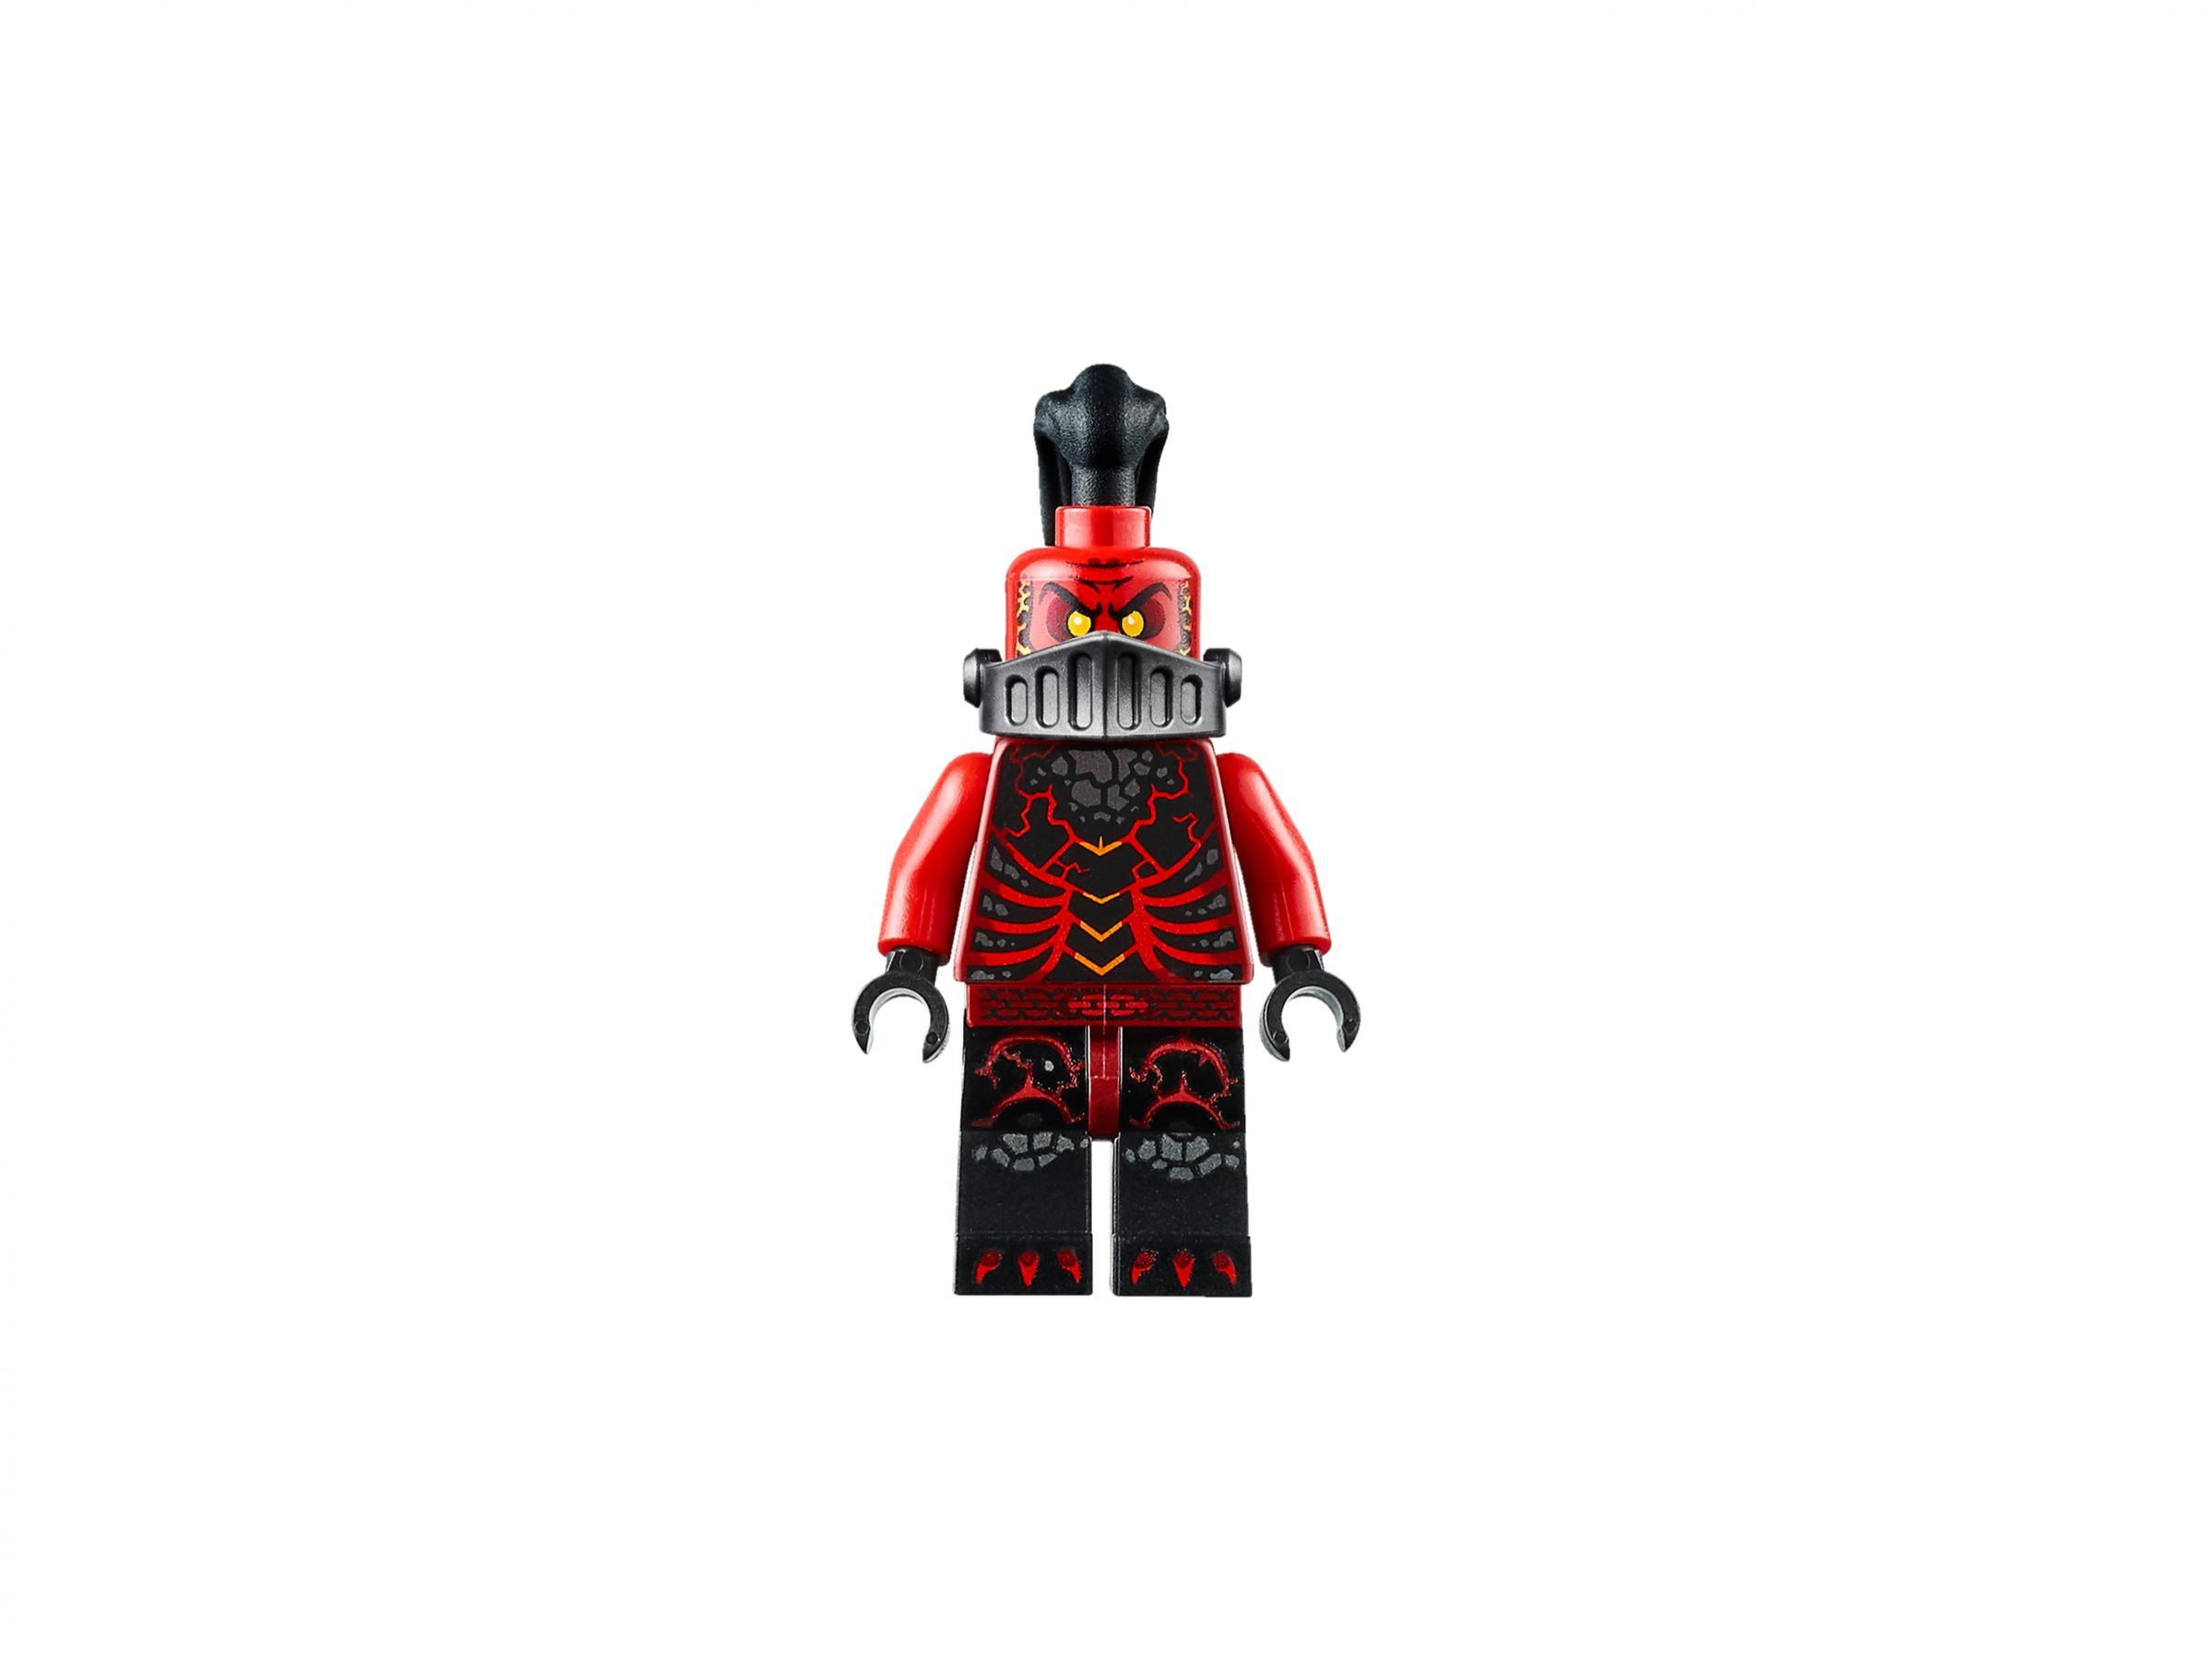 LEGO Nexo Knights 70338 Ultimativer General Magmar LEGO_70338_alt4.jpg